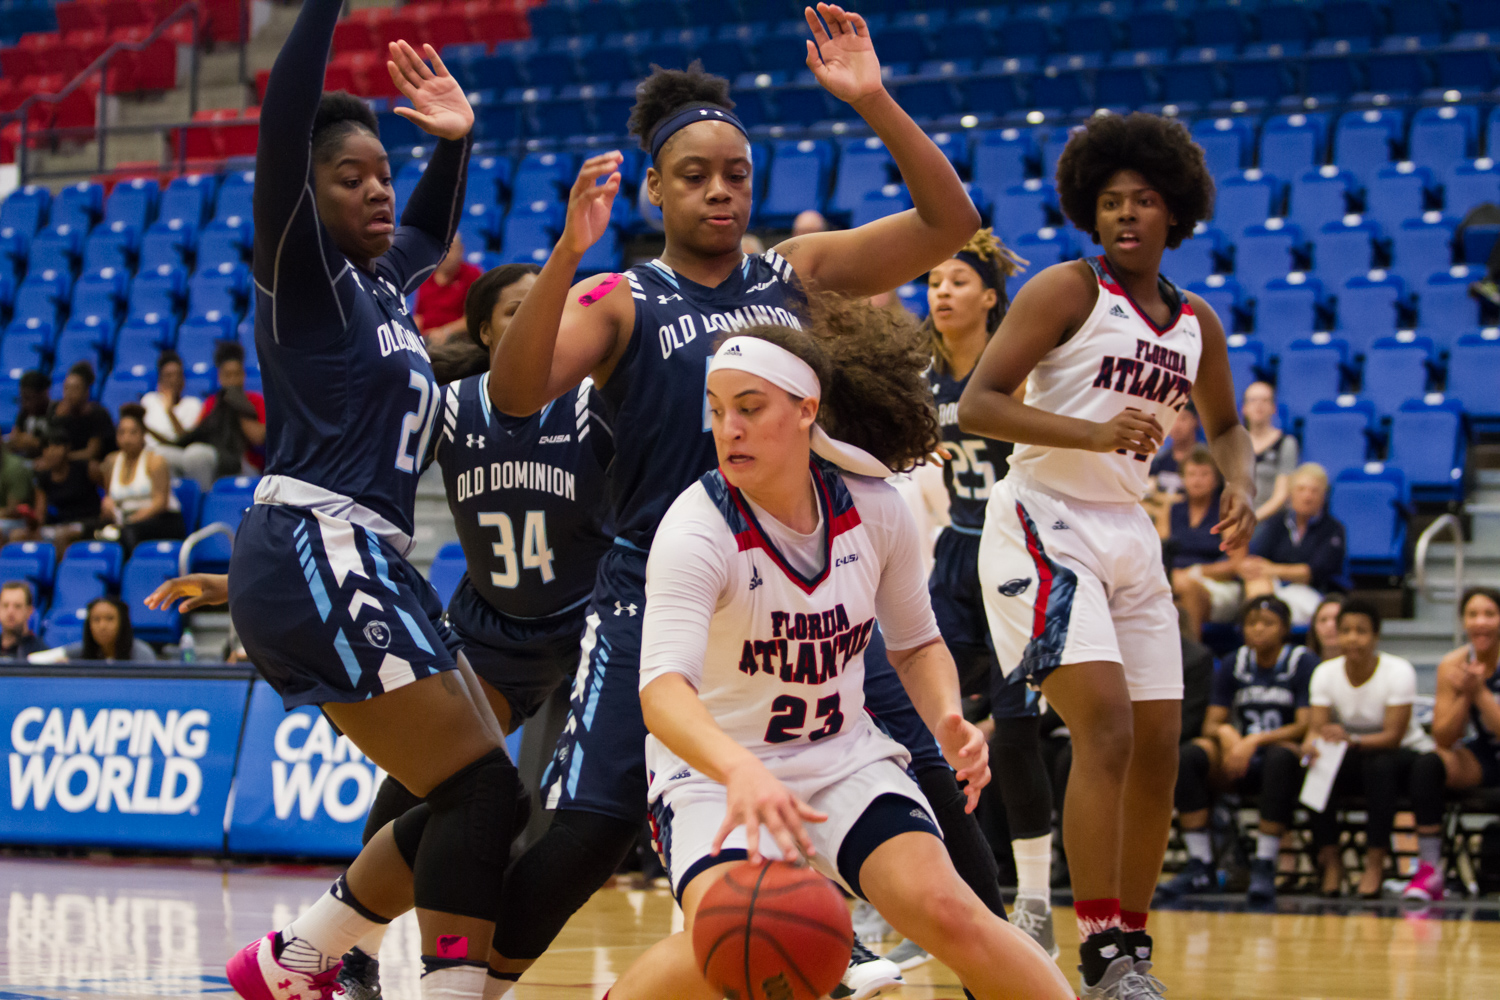 Freshman Alexis Shannon scored 12 points in the Owls loss against Old Dominion last Saturday. Alexander Rodriguez   Contributing Photographer